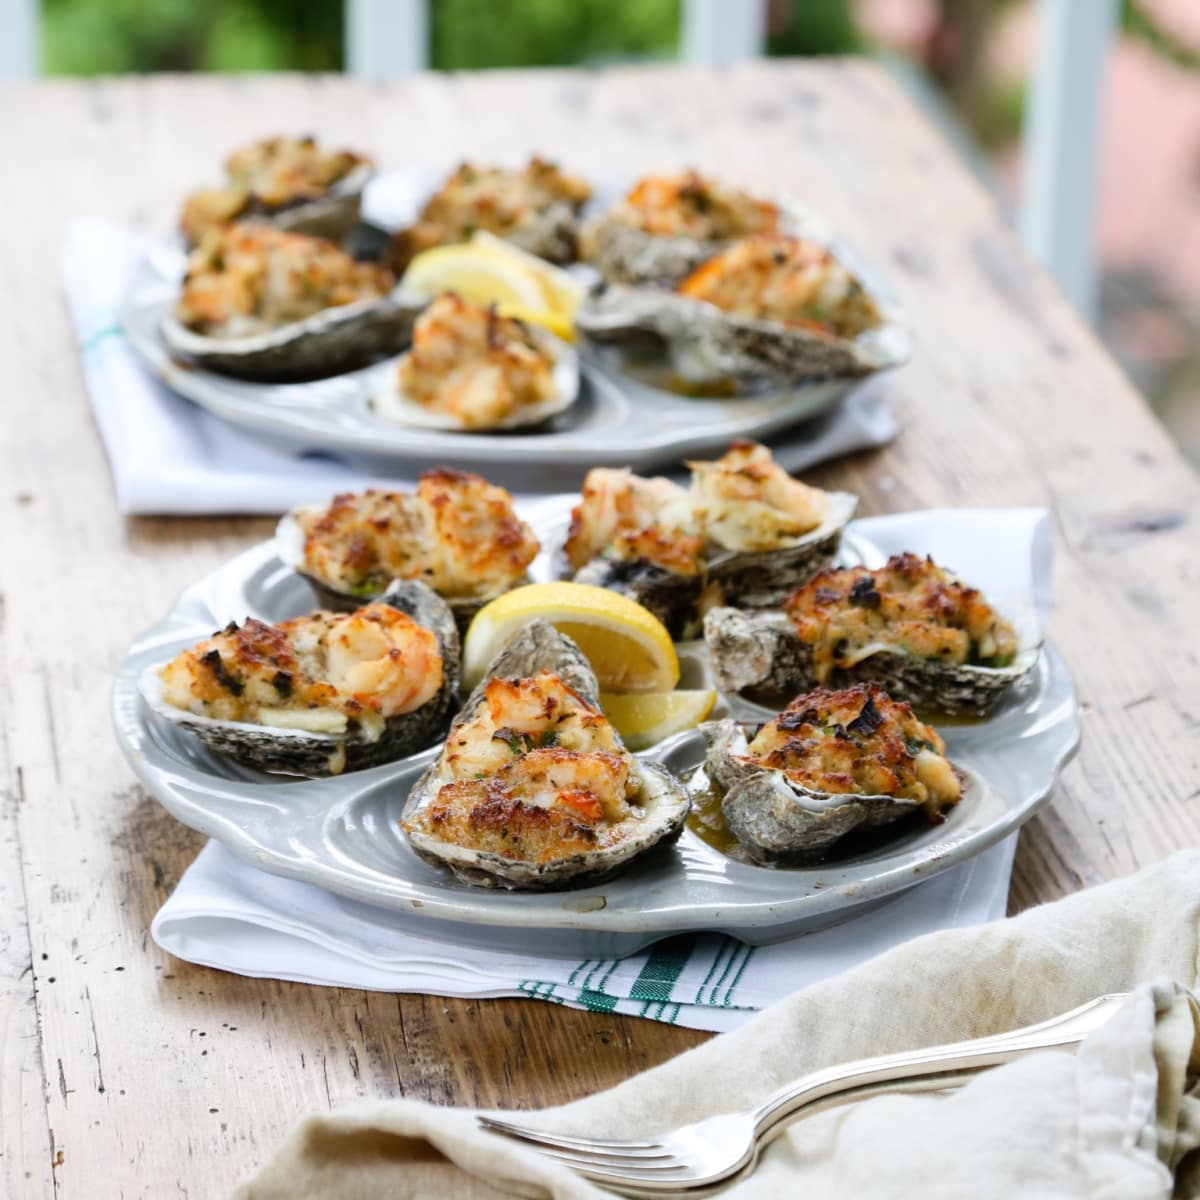 Eunice roasted oysters